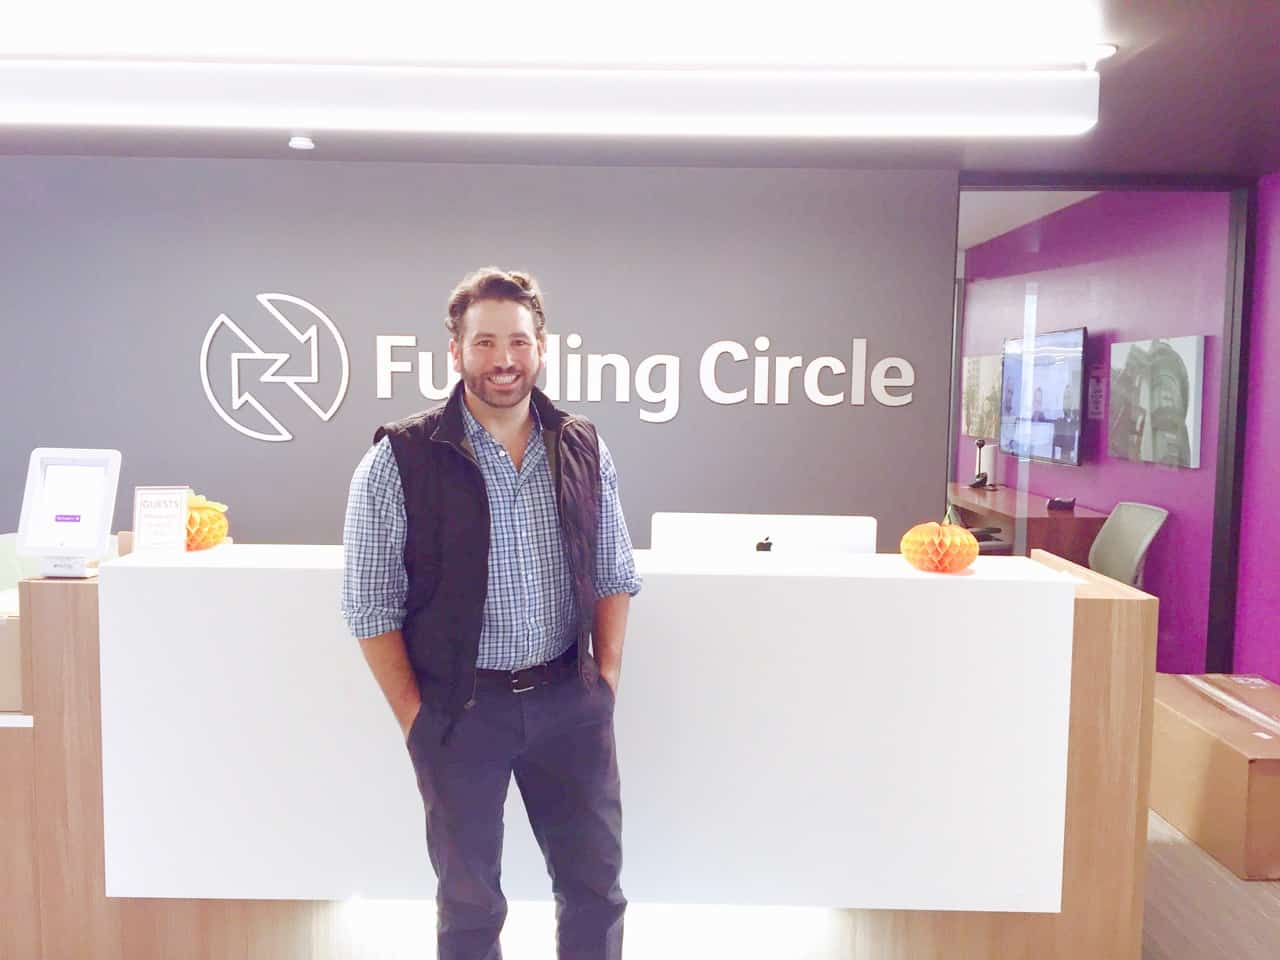 Funding Circle is Creating Meaningful Change in Lending